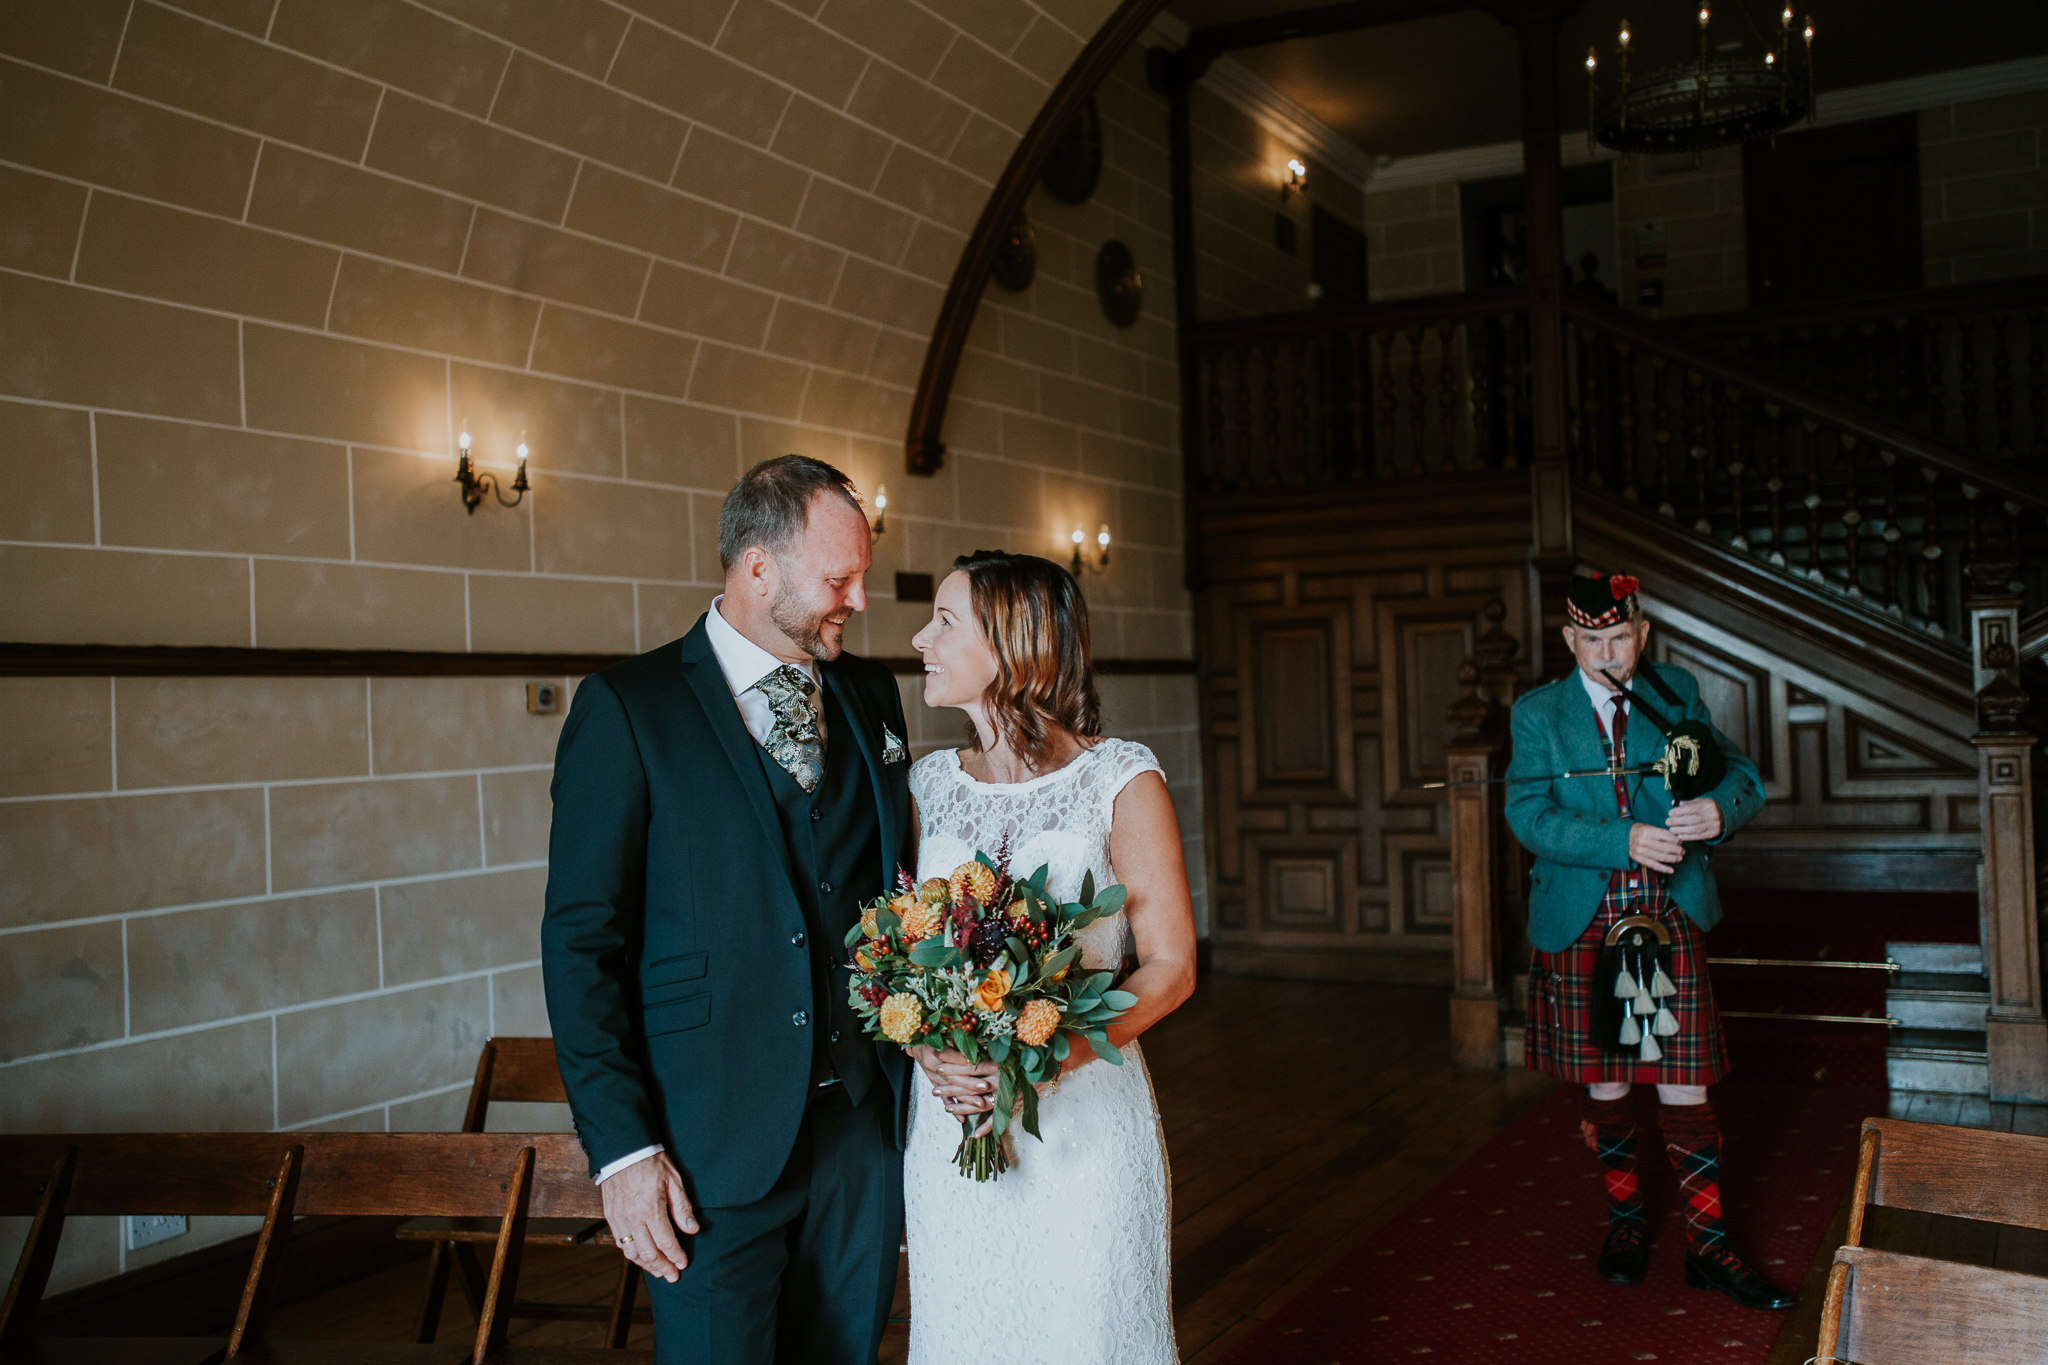 Wedding ceremony at Dalhousie castle.